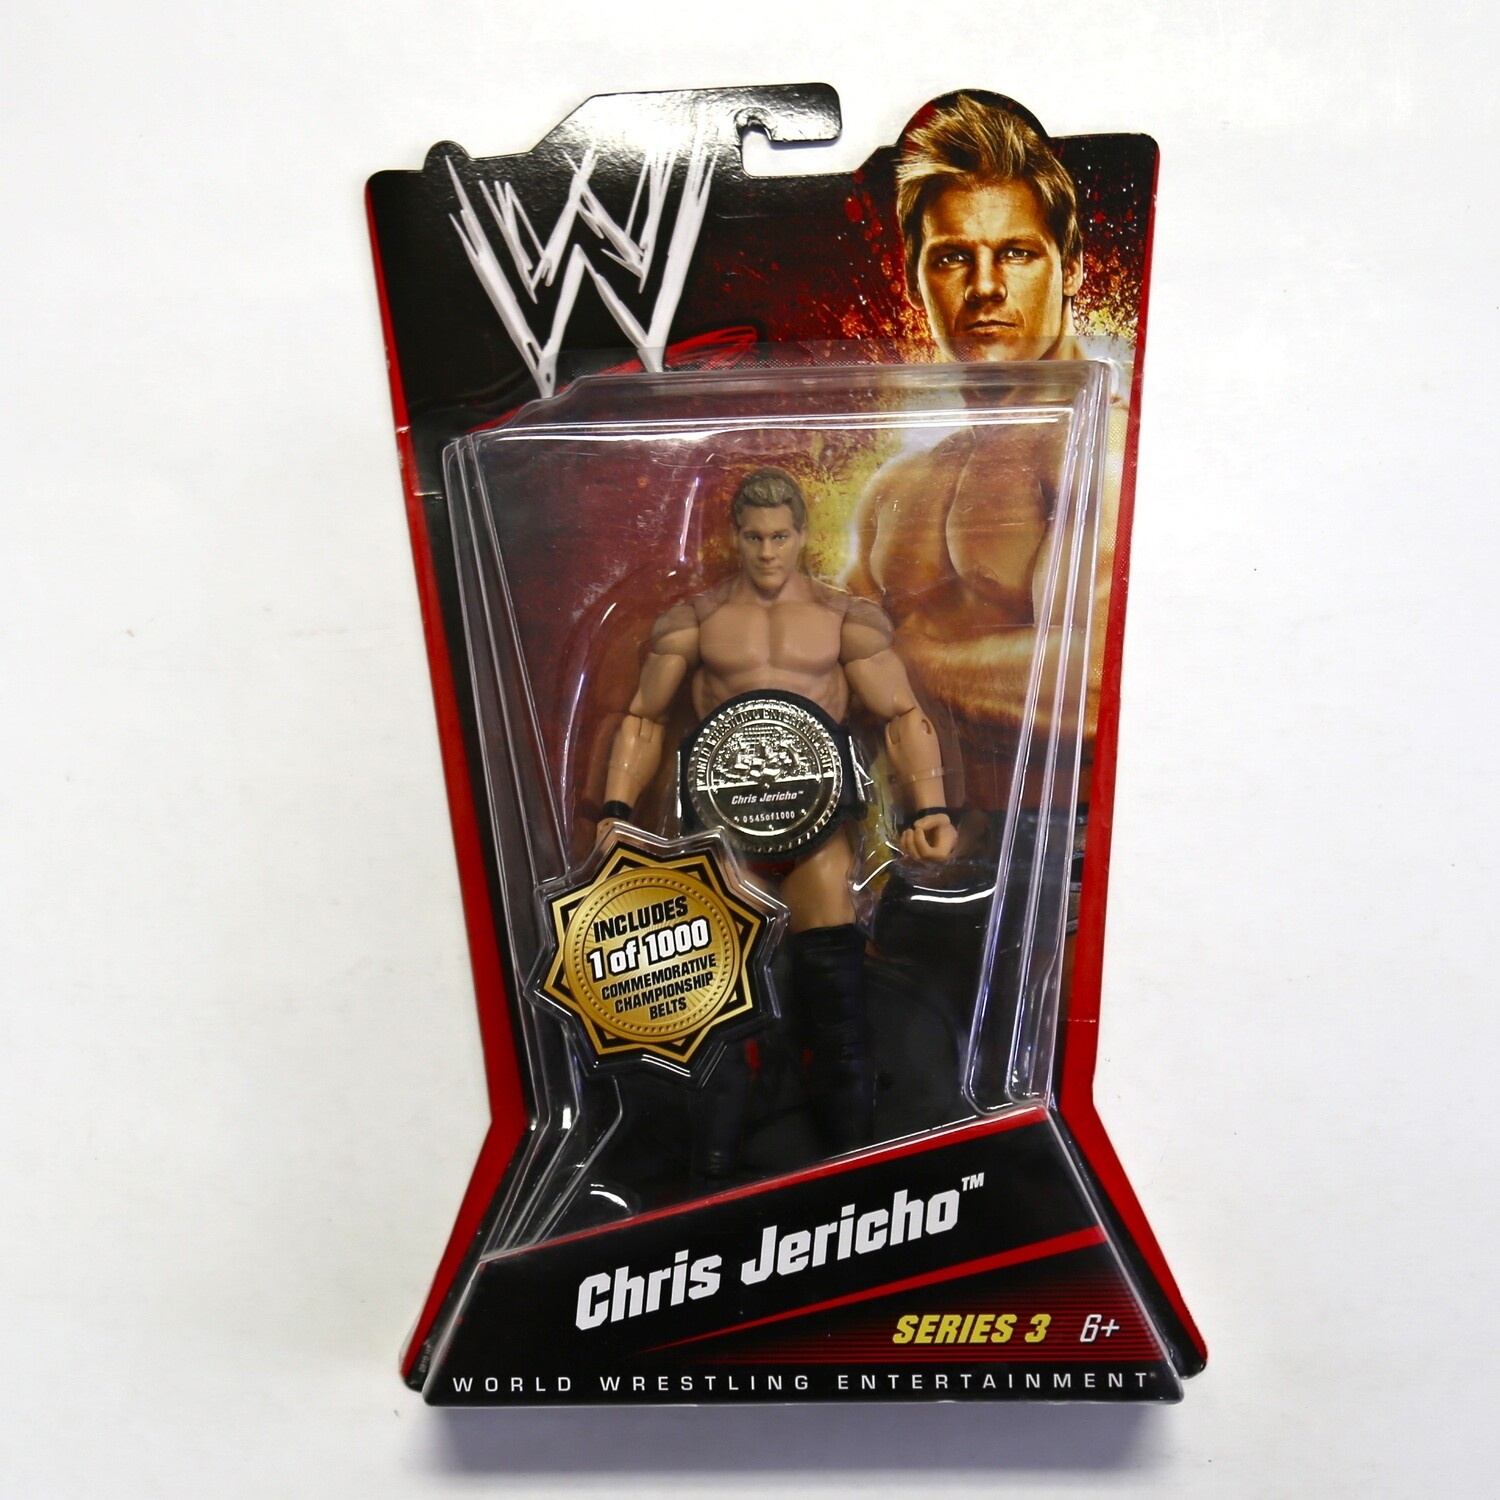 WWE Series 3 Chris Jericho with Commemorative Championship Belt